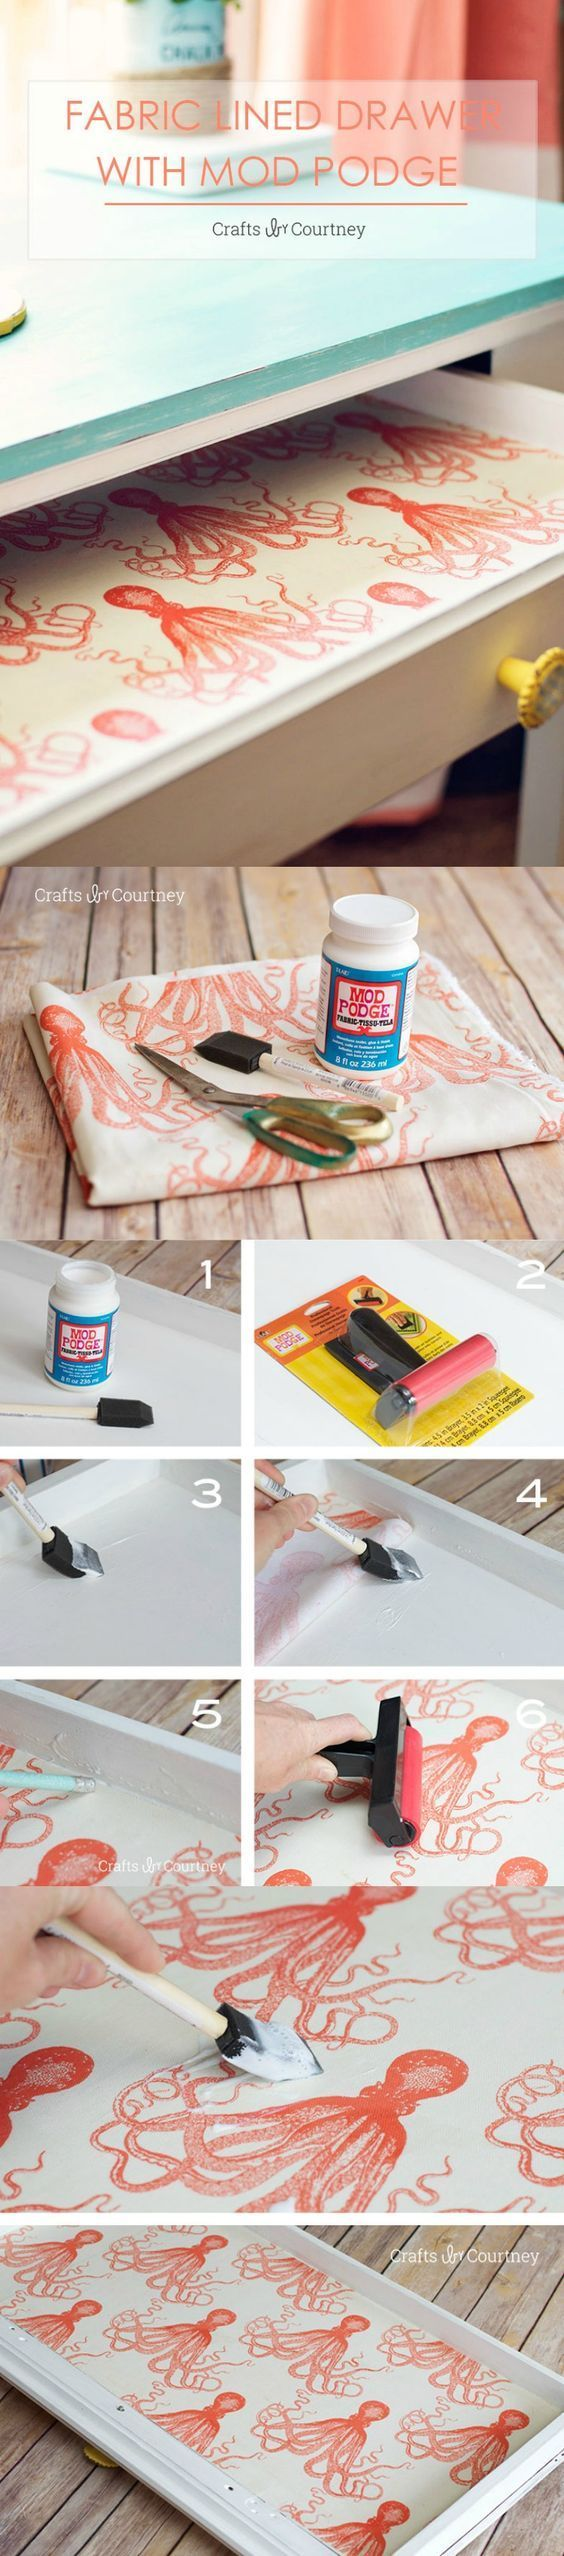 Use Mod Podge and your favorite fabric pattern to create these unique fabric lin...